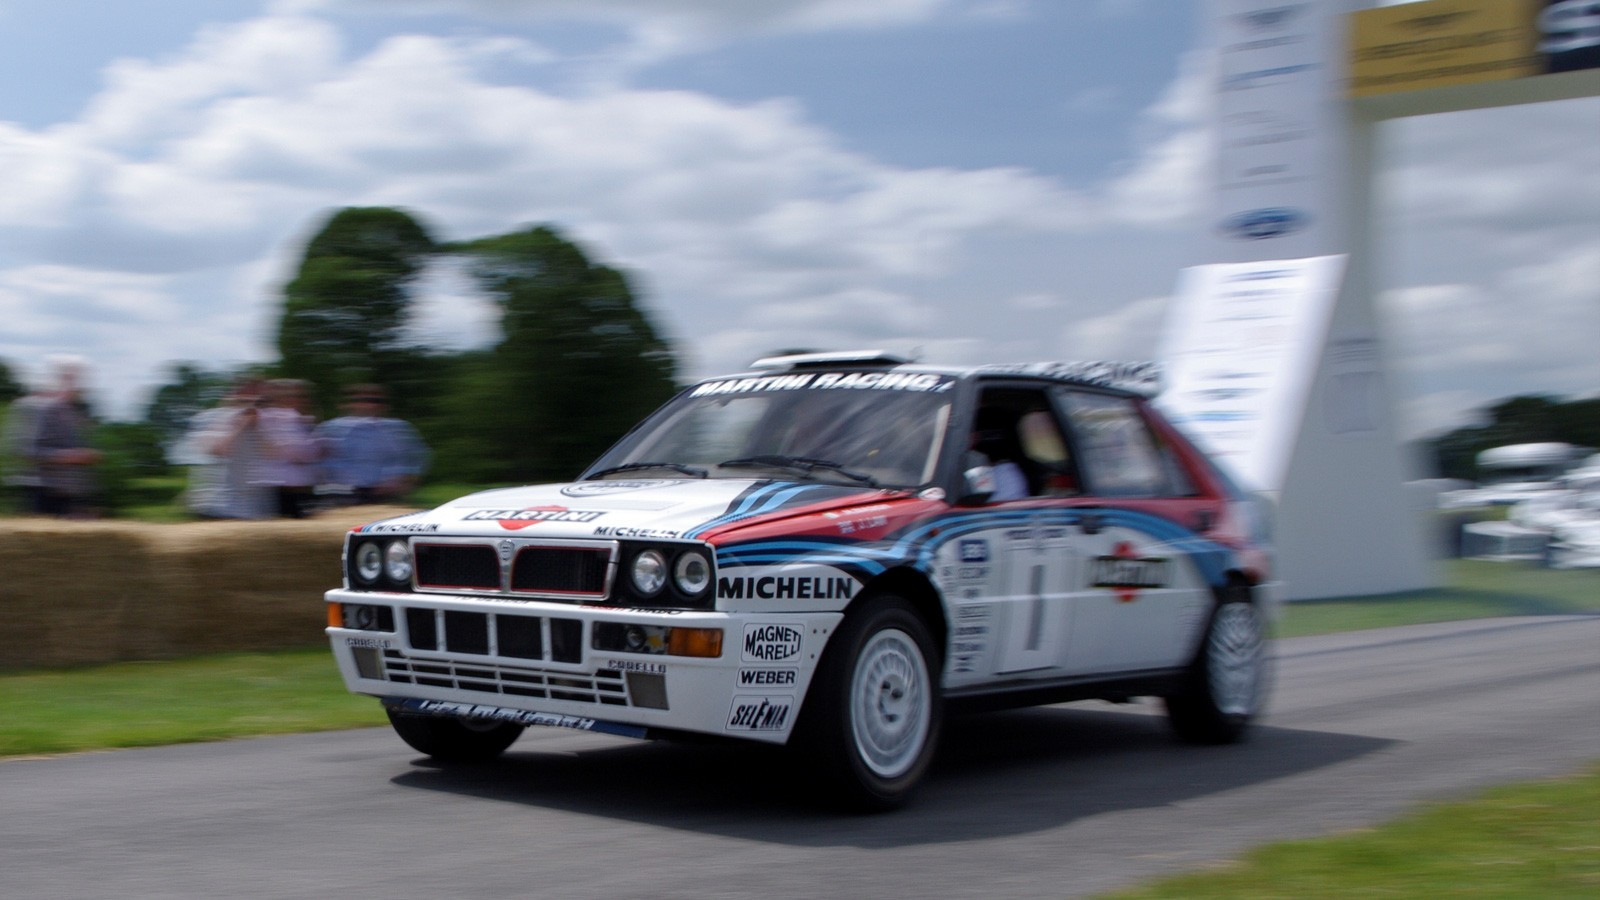 cars Lancia Delta HF Integrale 8v HD Wallpaper